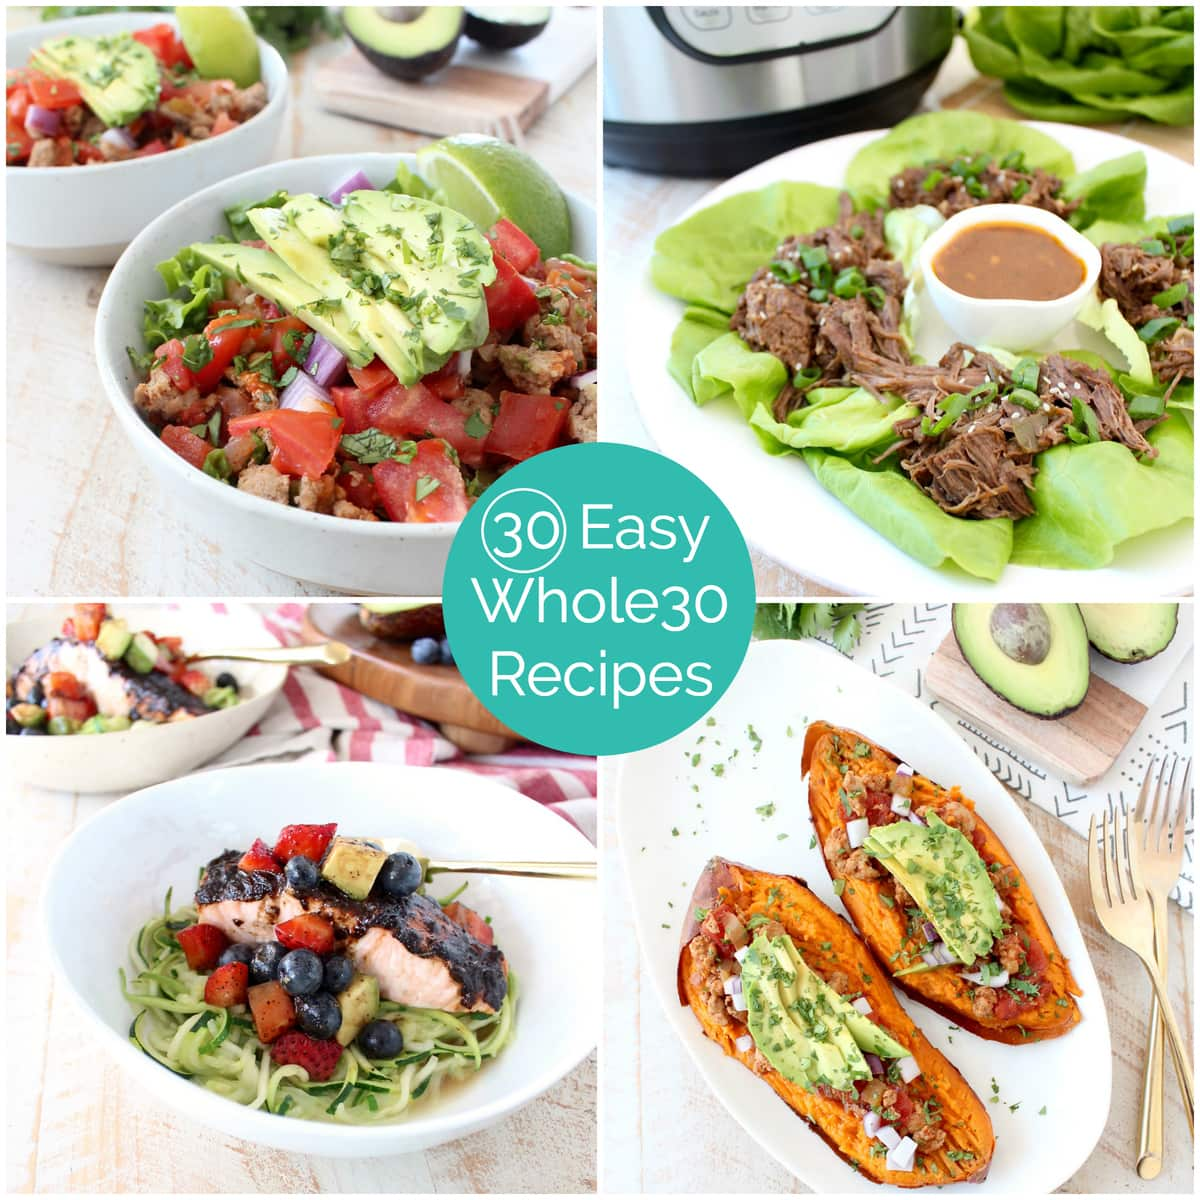 30 Minuten Küche Easy Cooking 30 Easy Whole30 Recipes 43 Shopping List Whitneybond